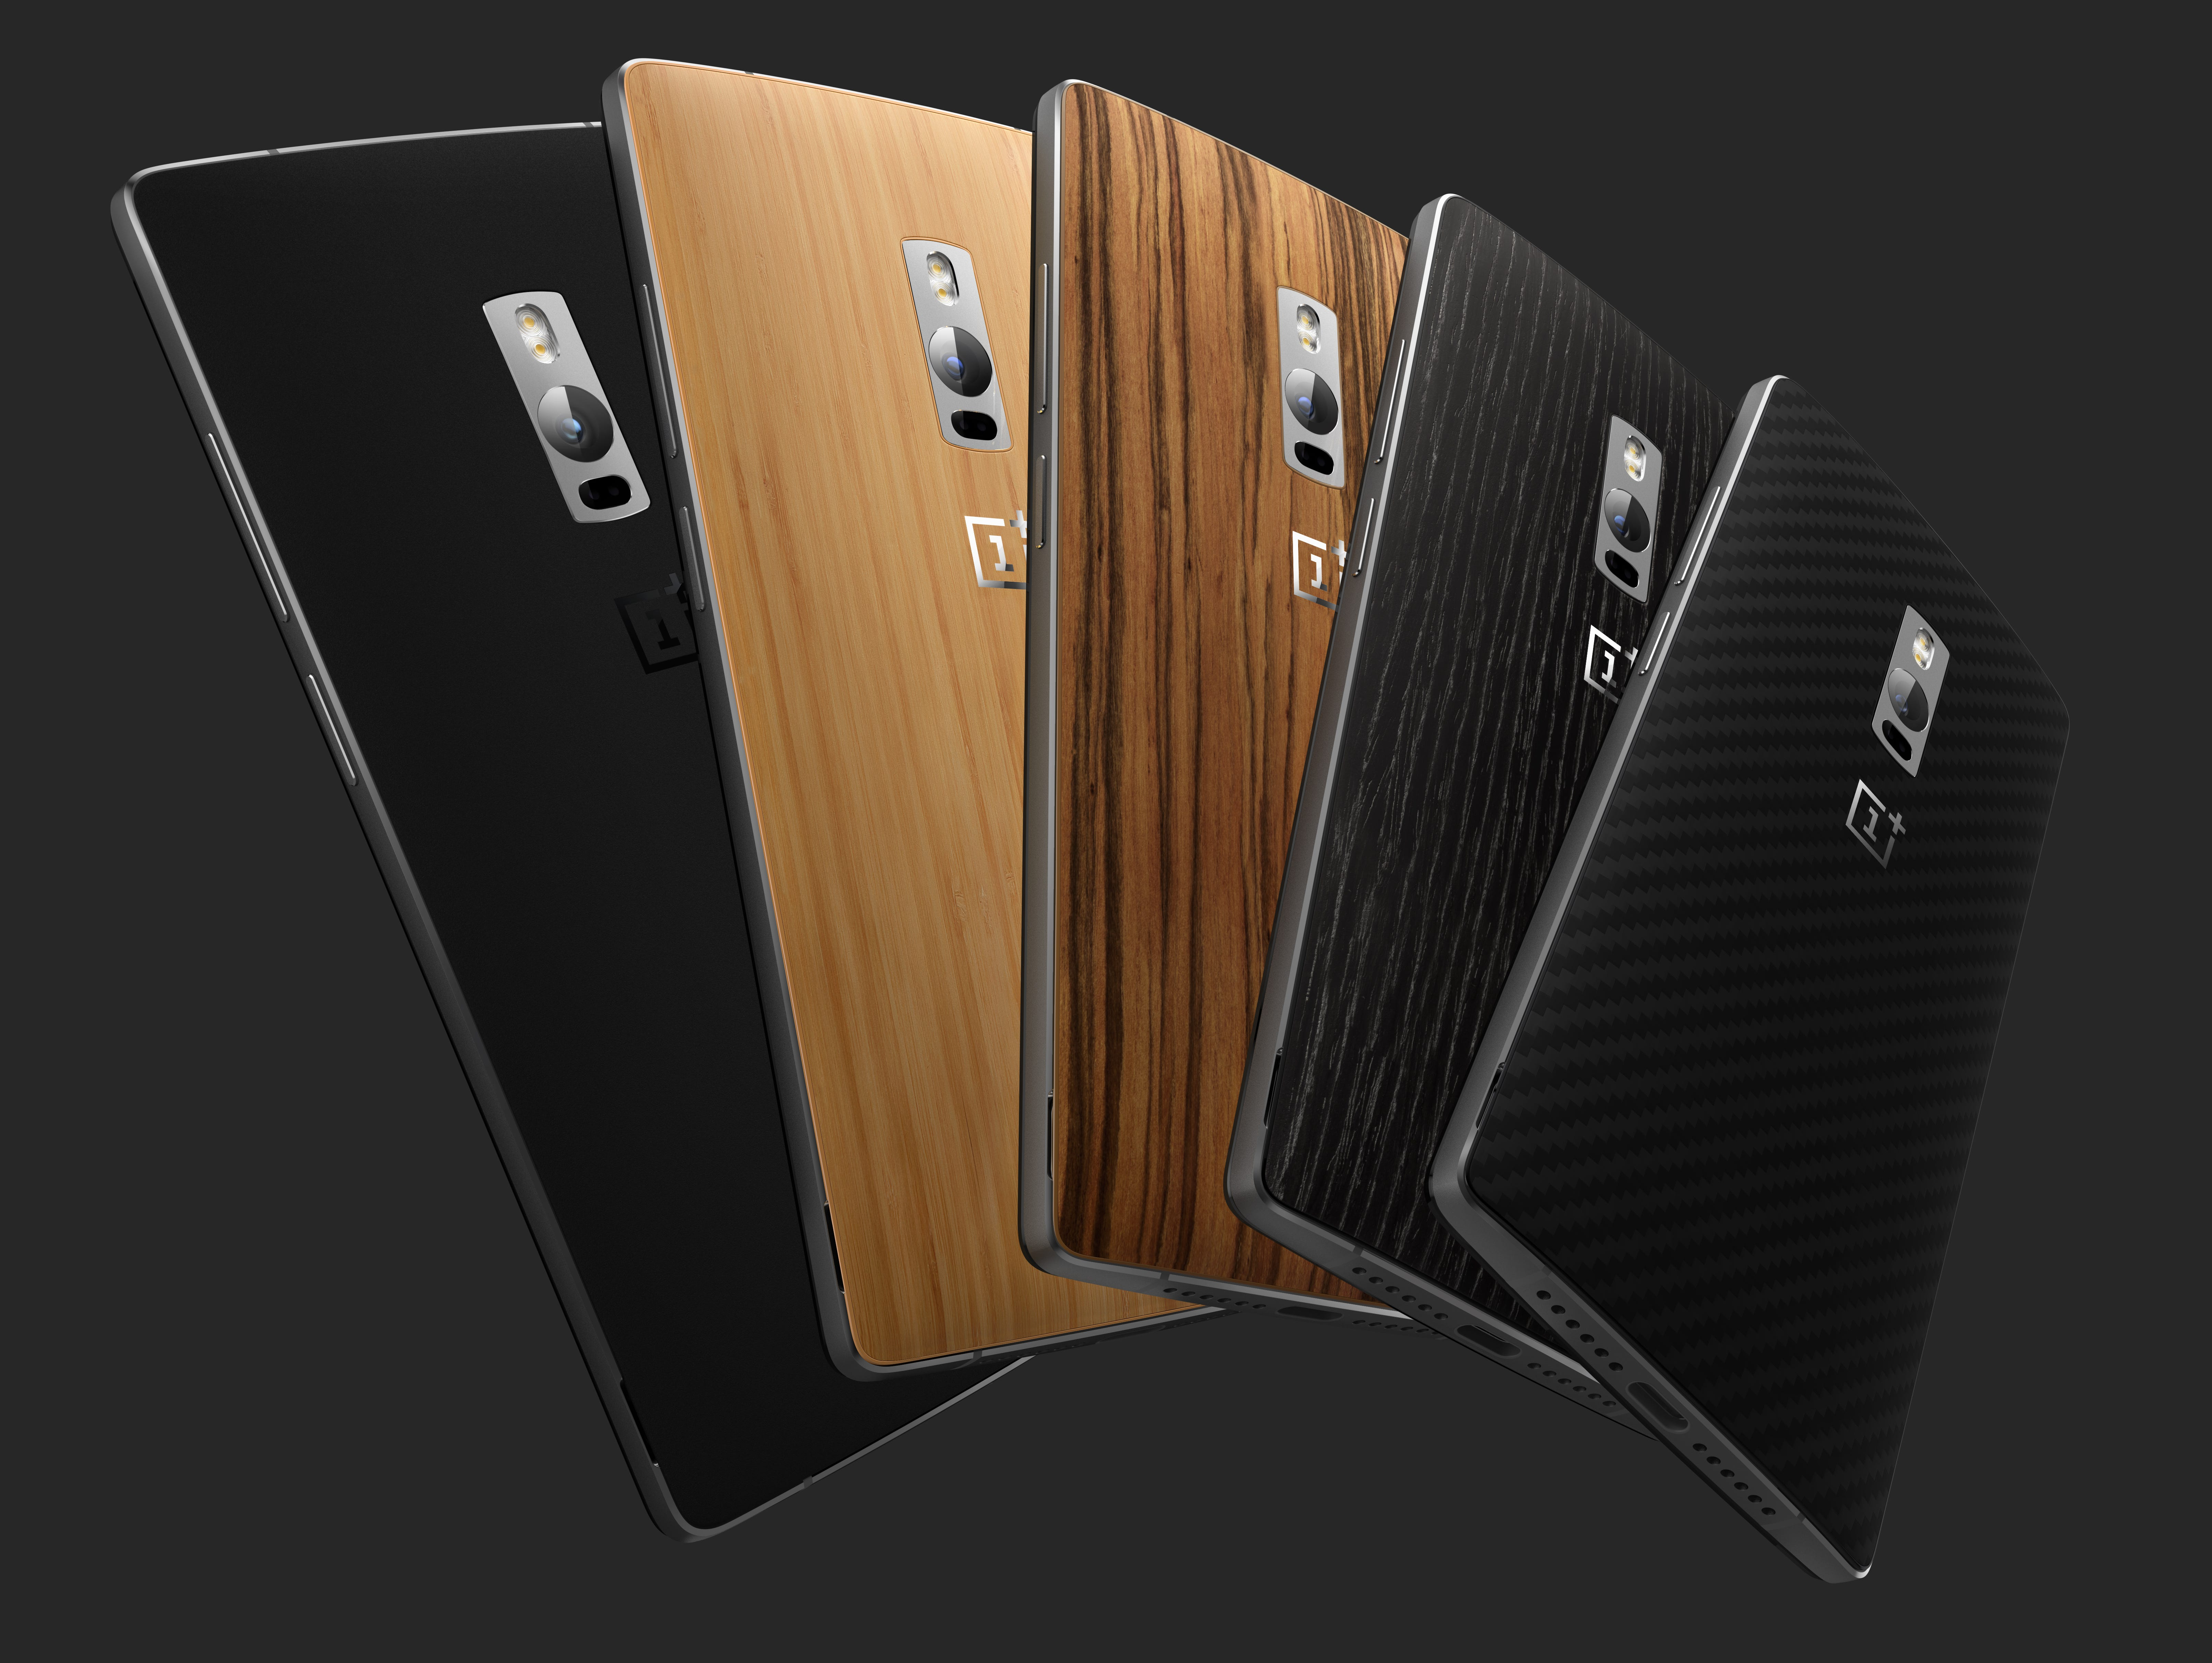 The swappable back covers for the OnePlus 2 include Bamboo, Black Apricot, Rosewood as well as Kevlar